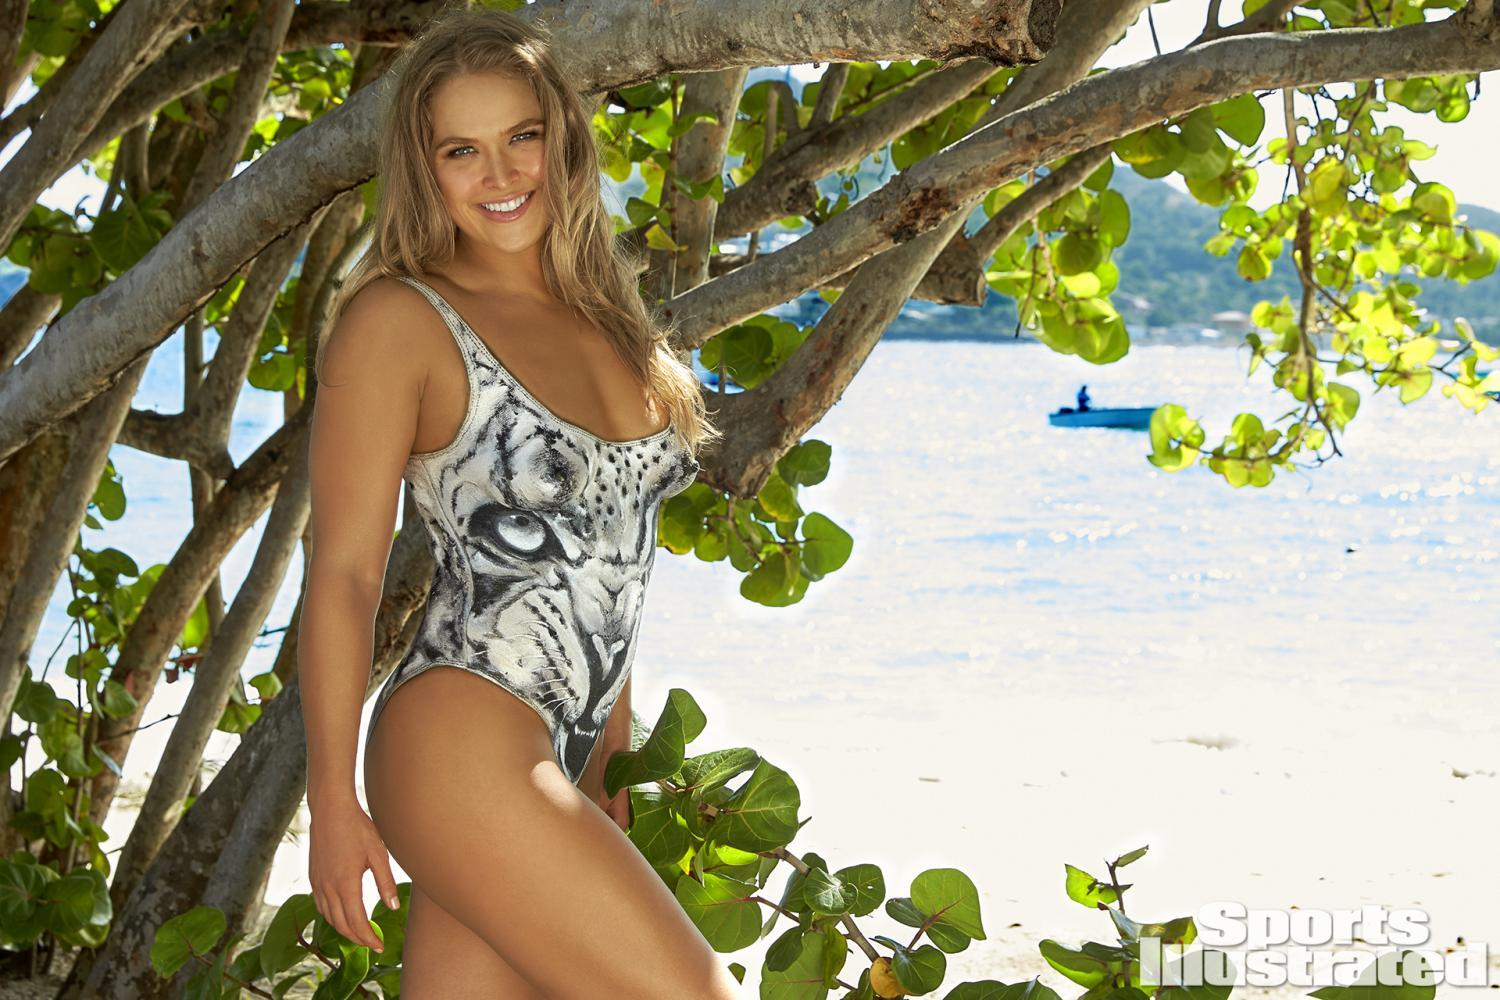 ronda-rousey-foi-capa-da-revista-sports-illustrated-so-de-bodypaint11